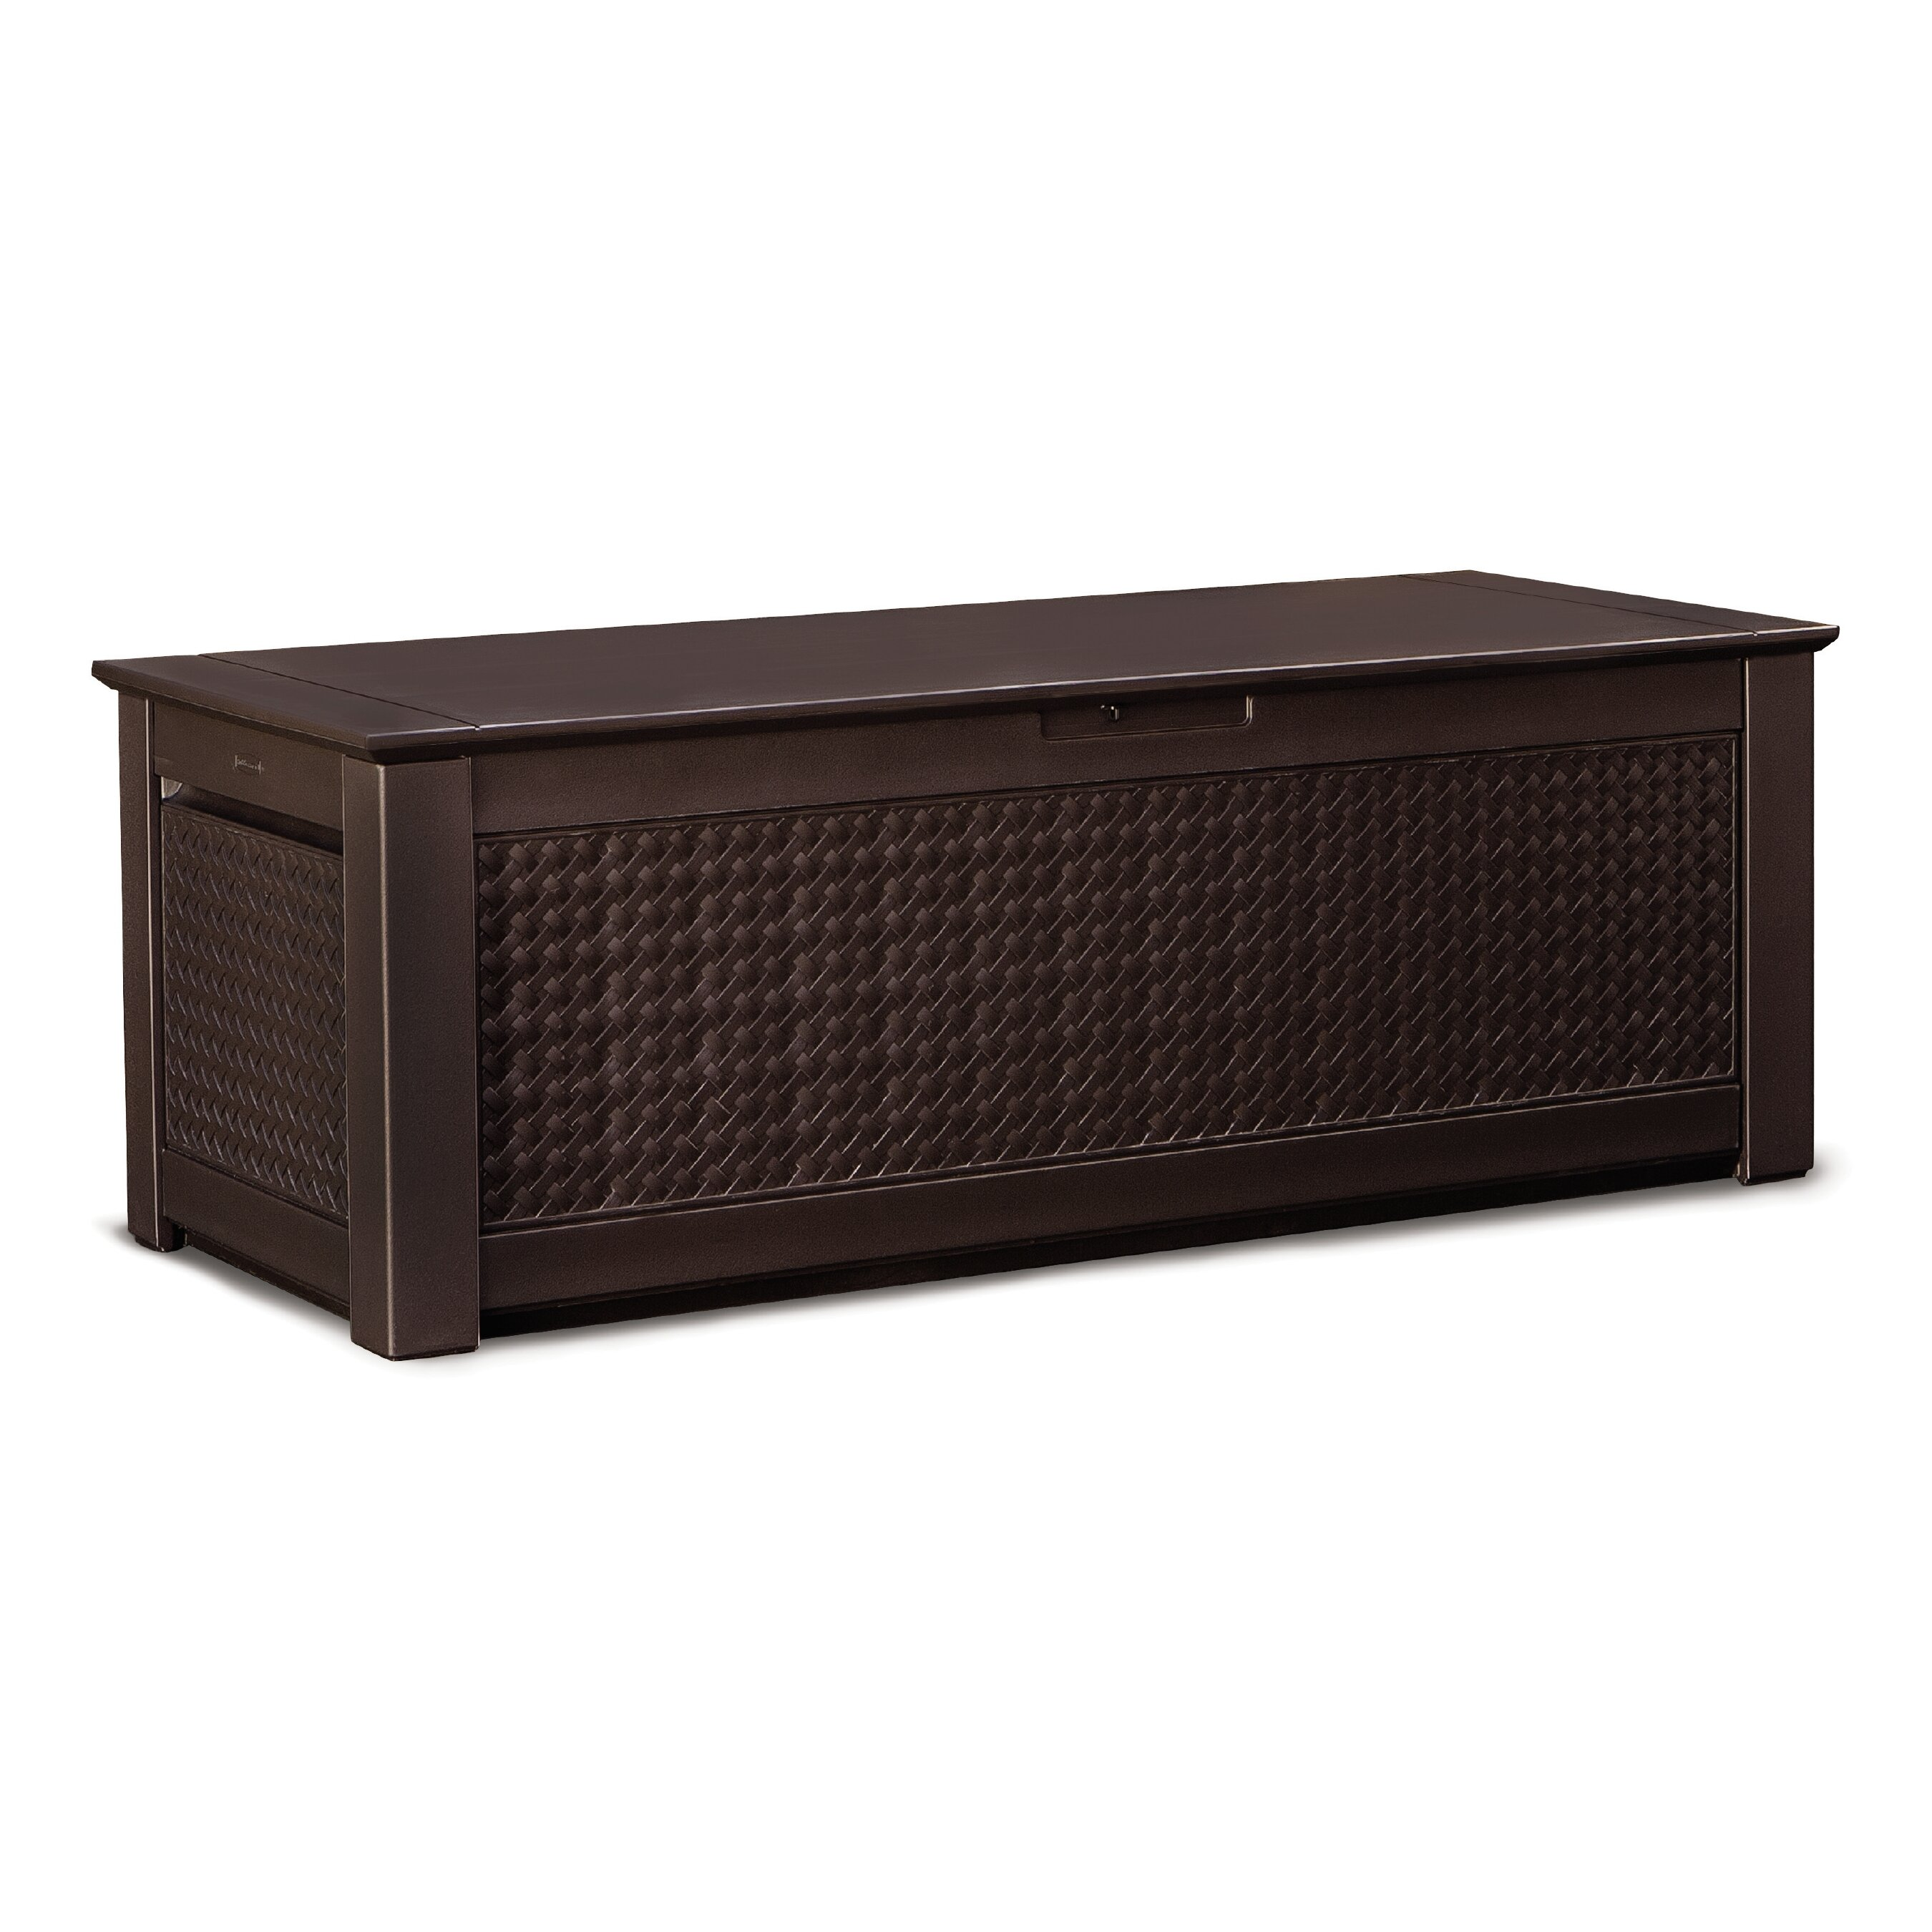 Rubbermaid Patio Chic Deck Box Amp Reviews Wayfair